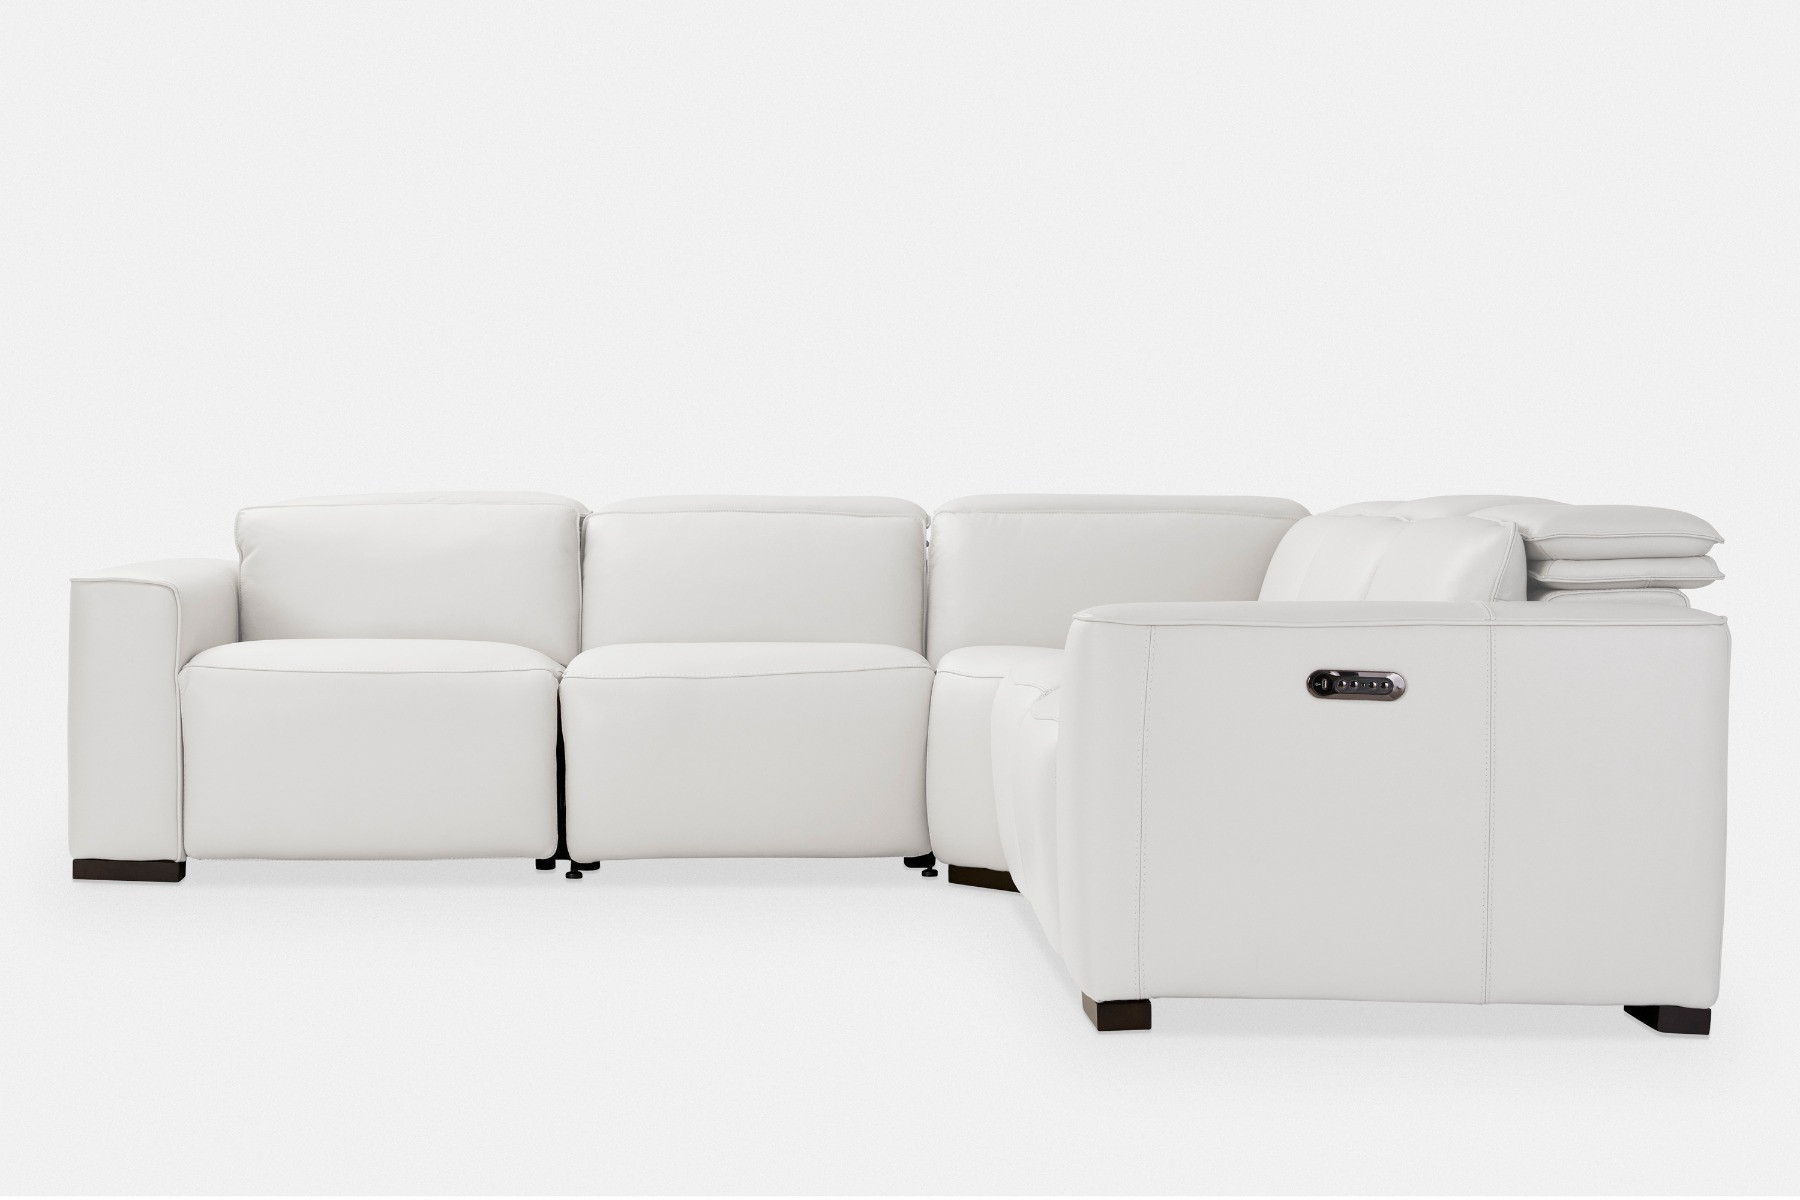 Awesome Rome Leather Sectional Sofa Maison Corbeil Caraccident5 Cool Chair Designs And Ideas Caraccident5Info